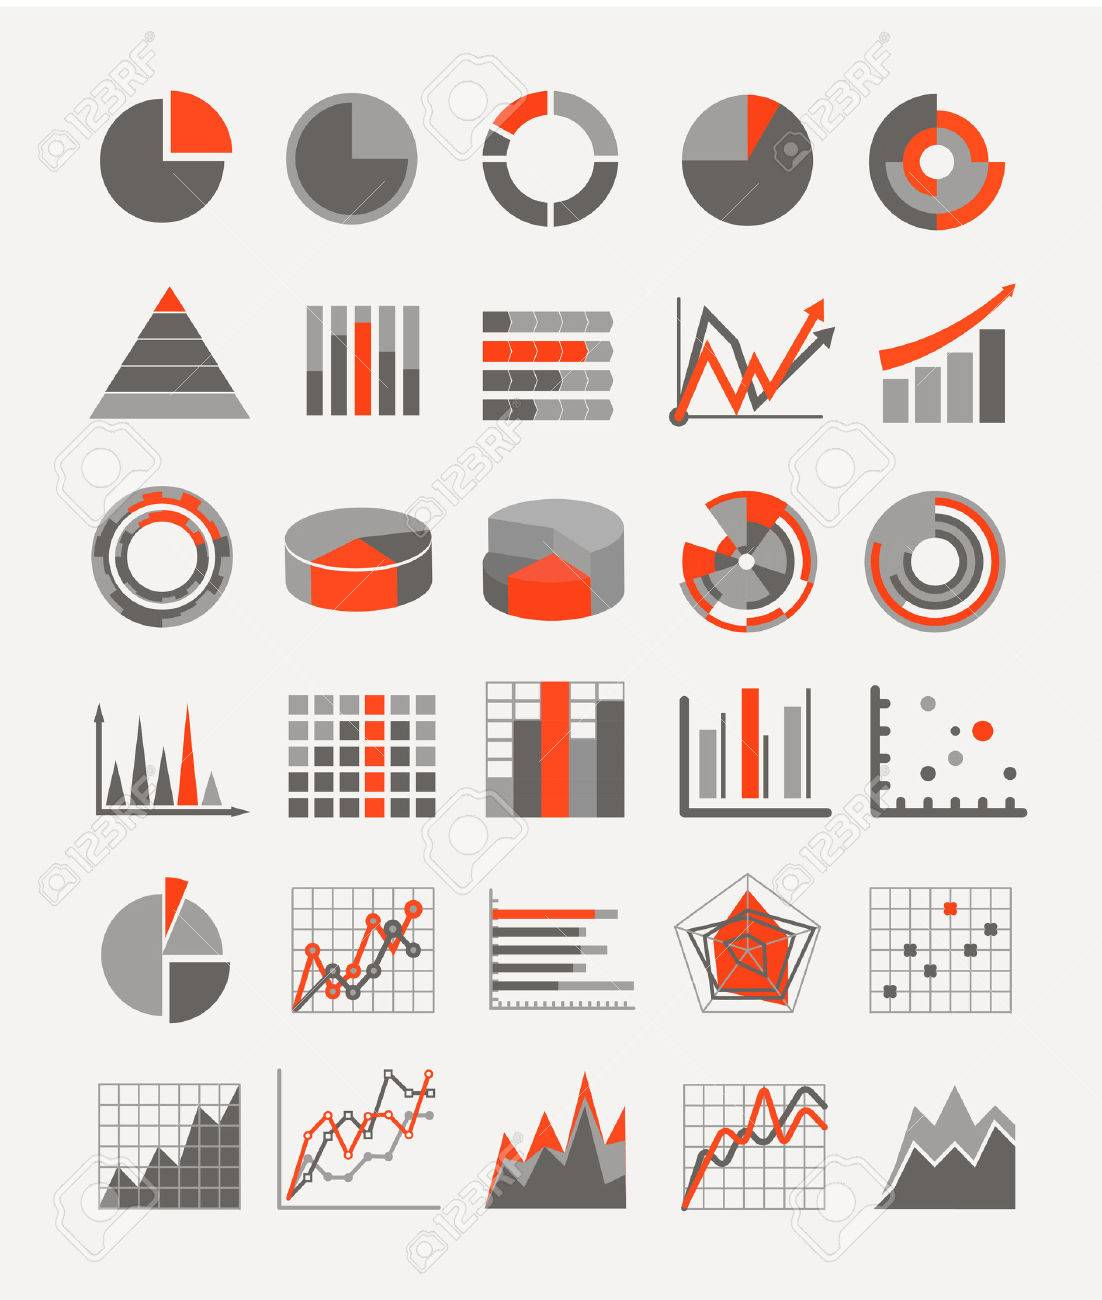 Graphic business ratings and charts infographic elements - 23816411